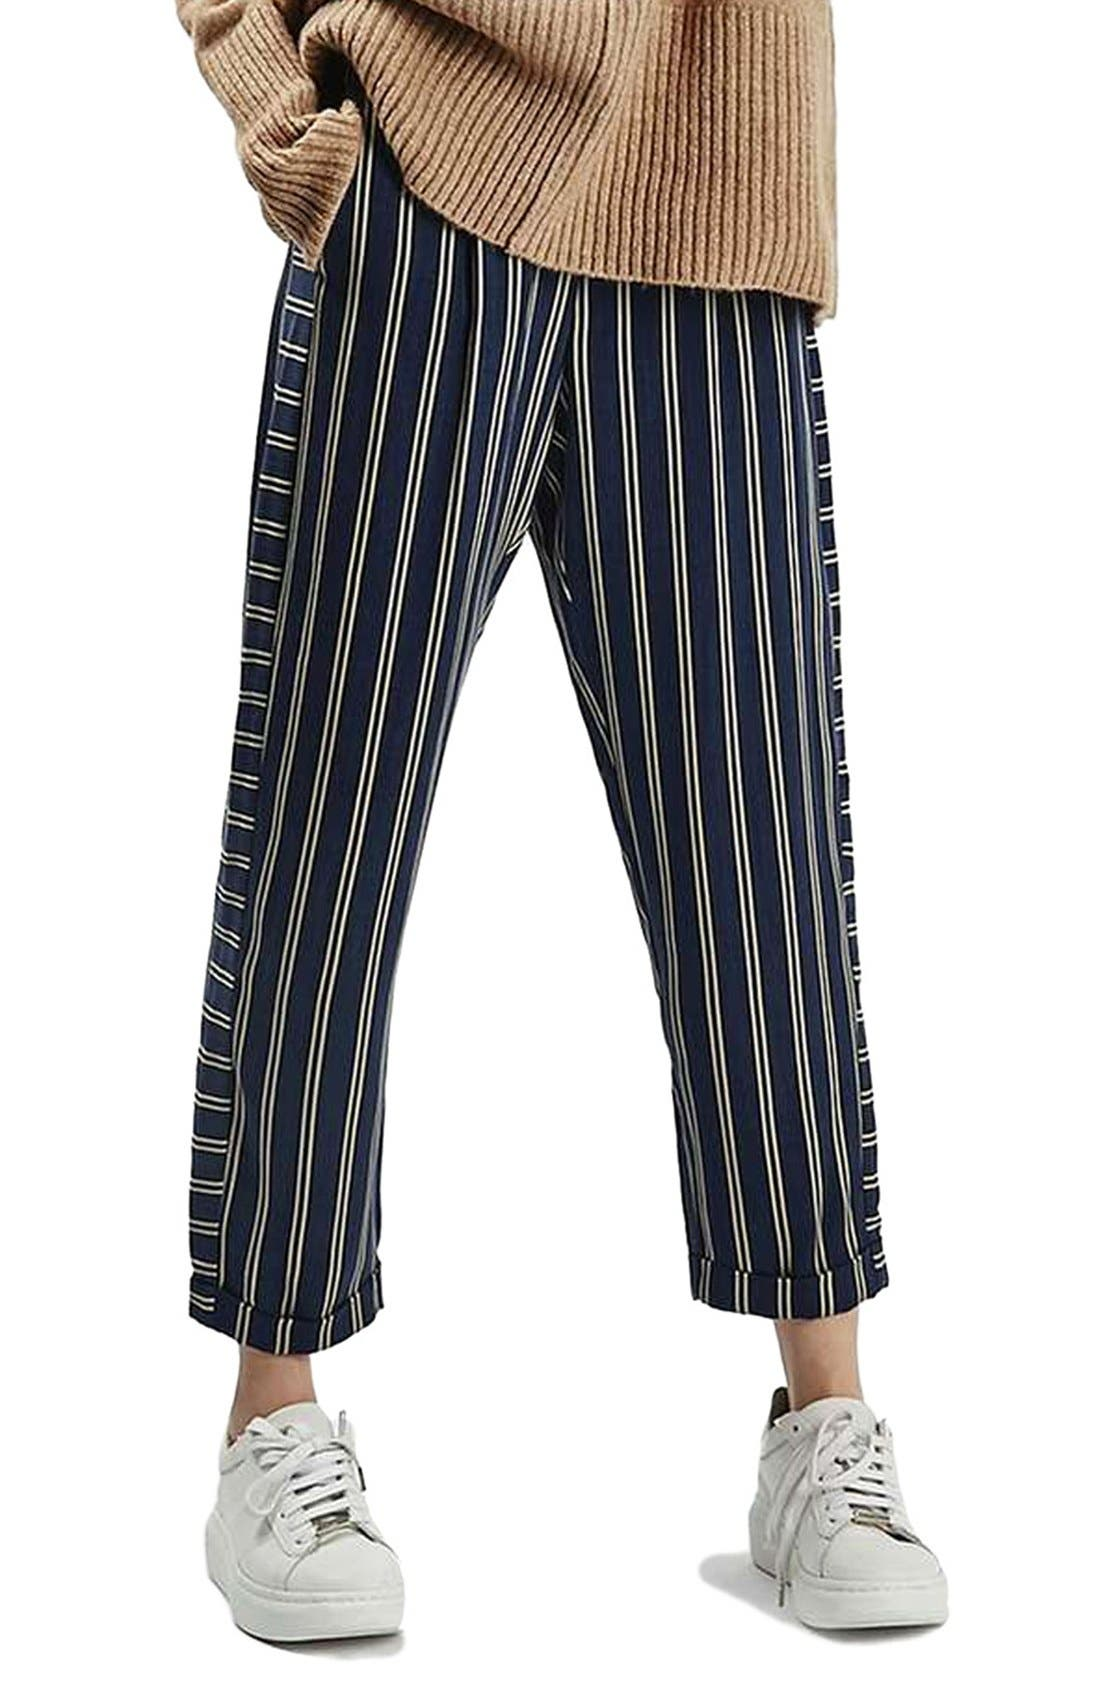 Alternate Image 1 Selected - Topshop Stripe Peg Trousers